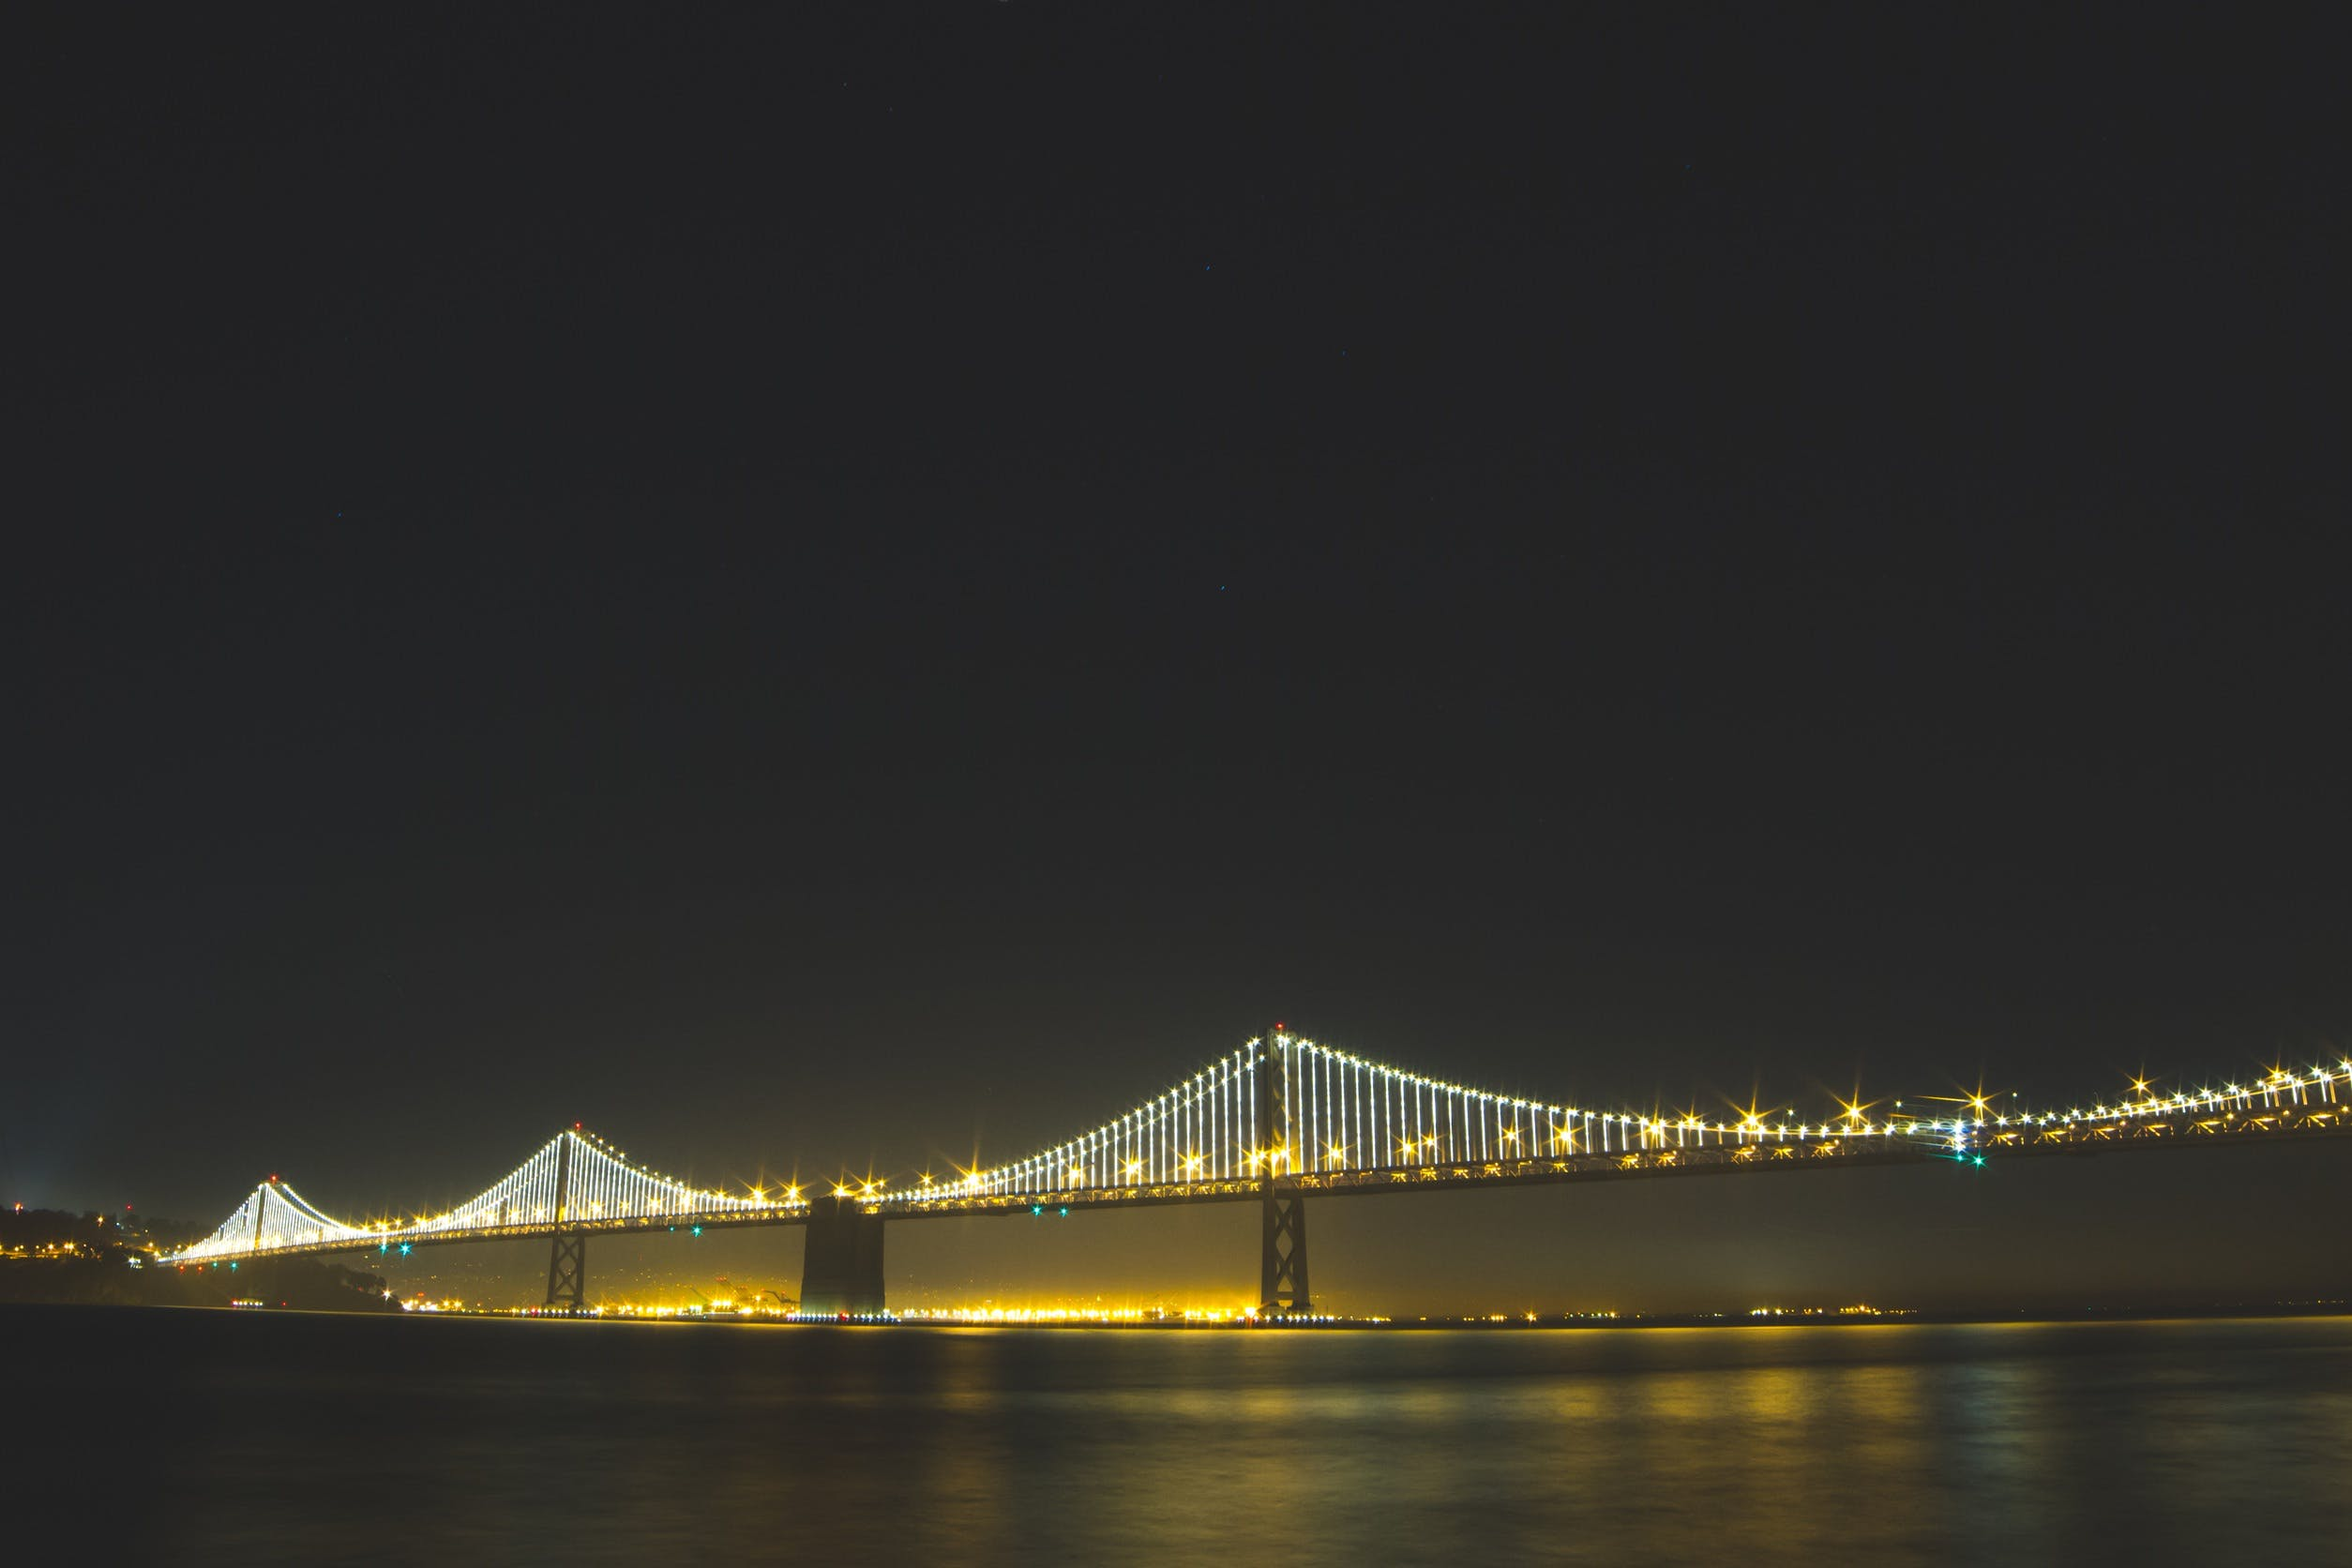 Lighted Bridge at Nighttime